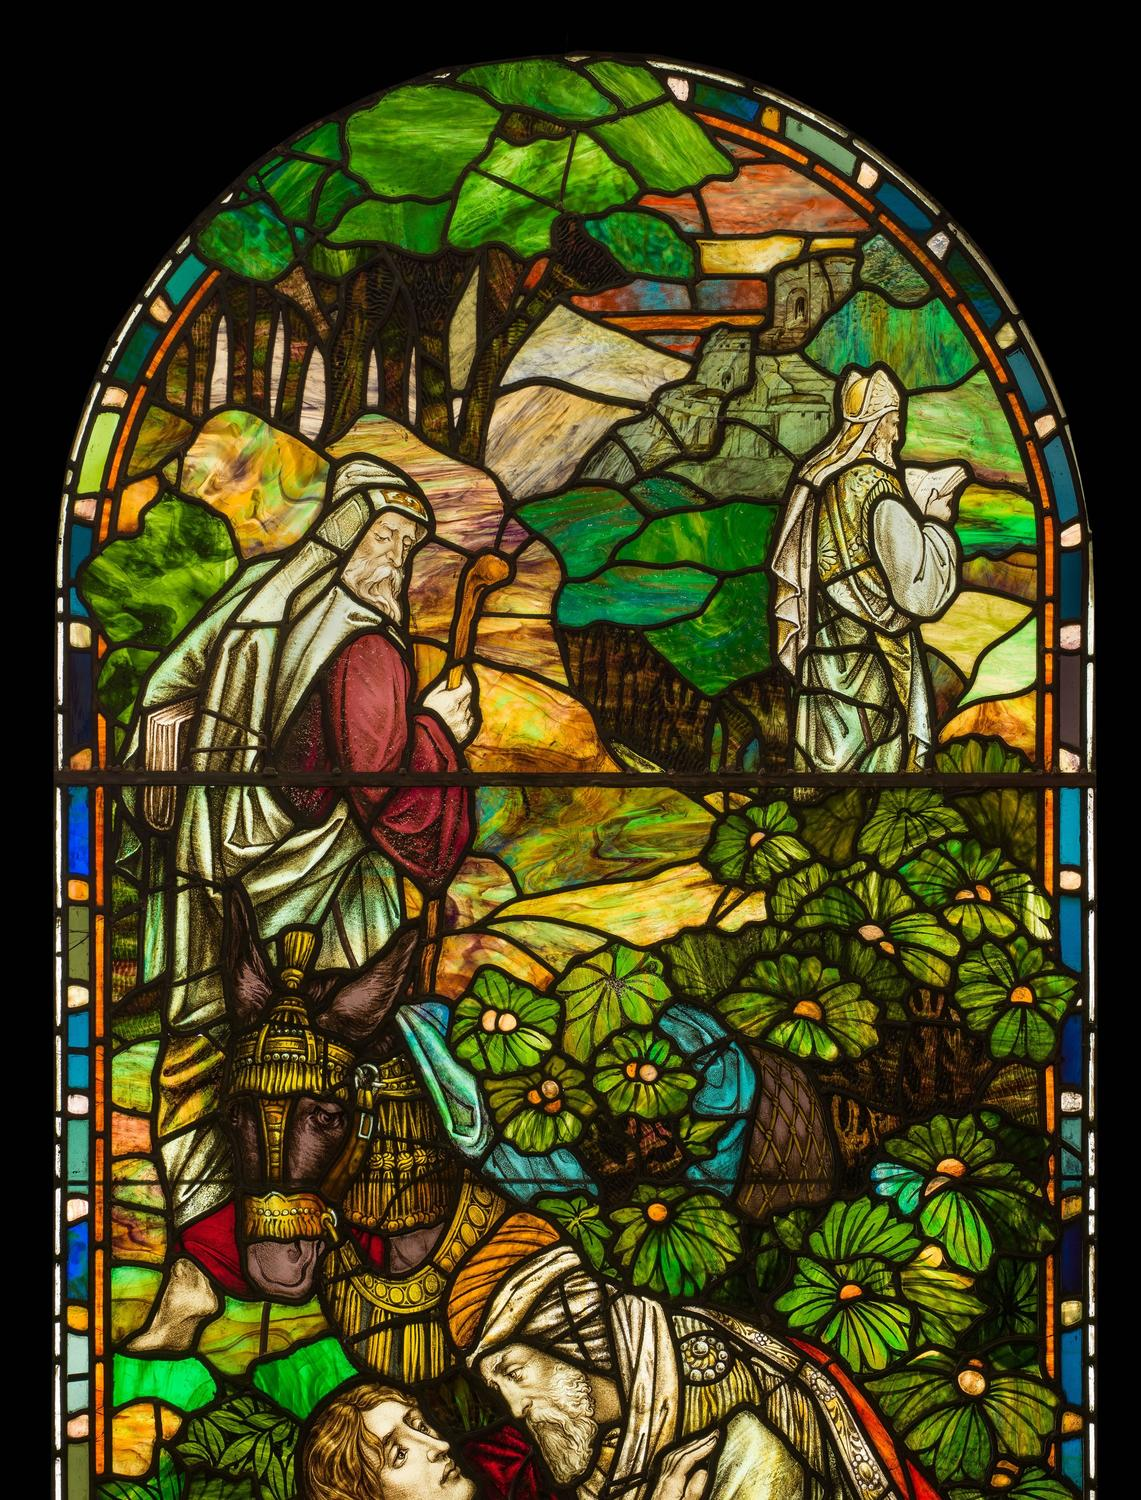 A Very Beautiful Antique Victorian Stained Glass Window